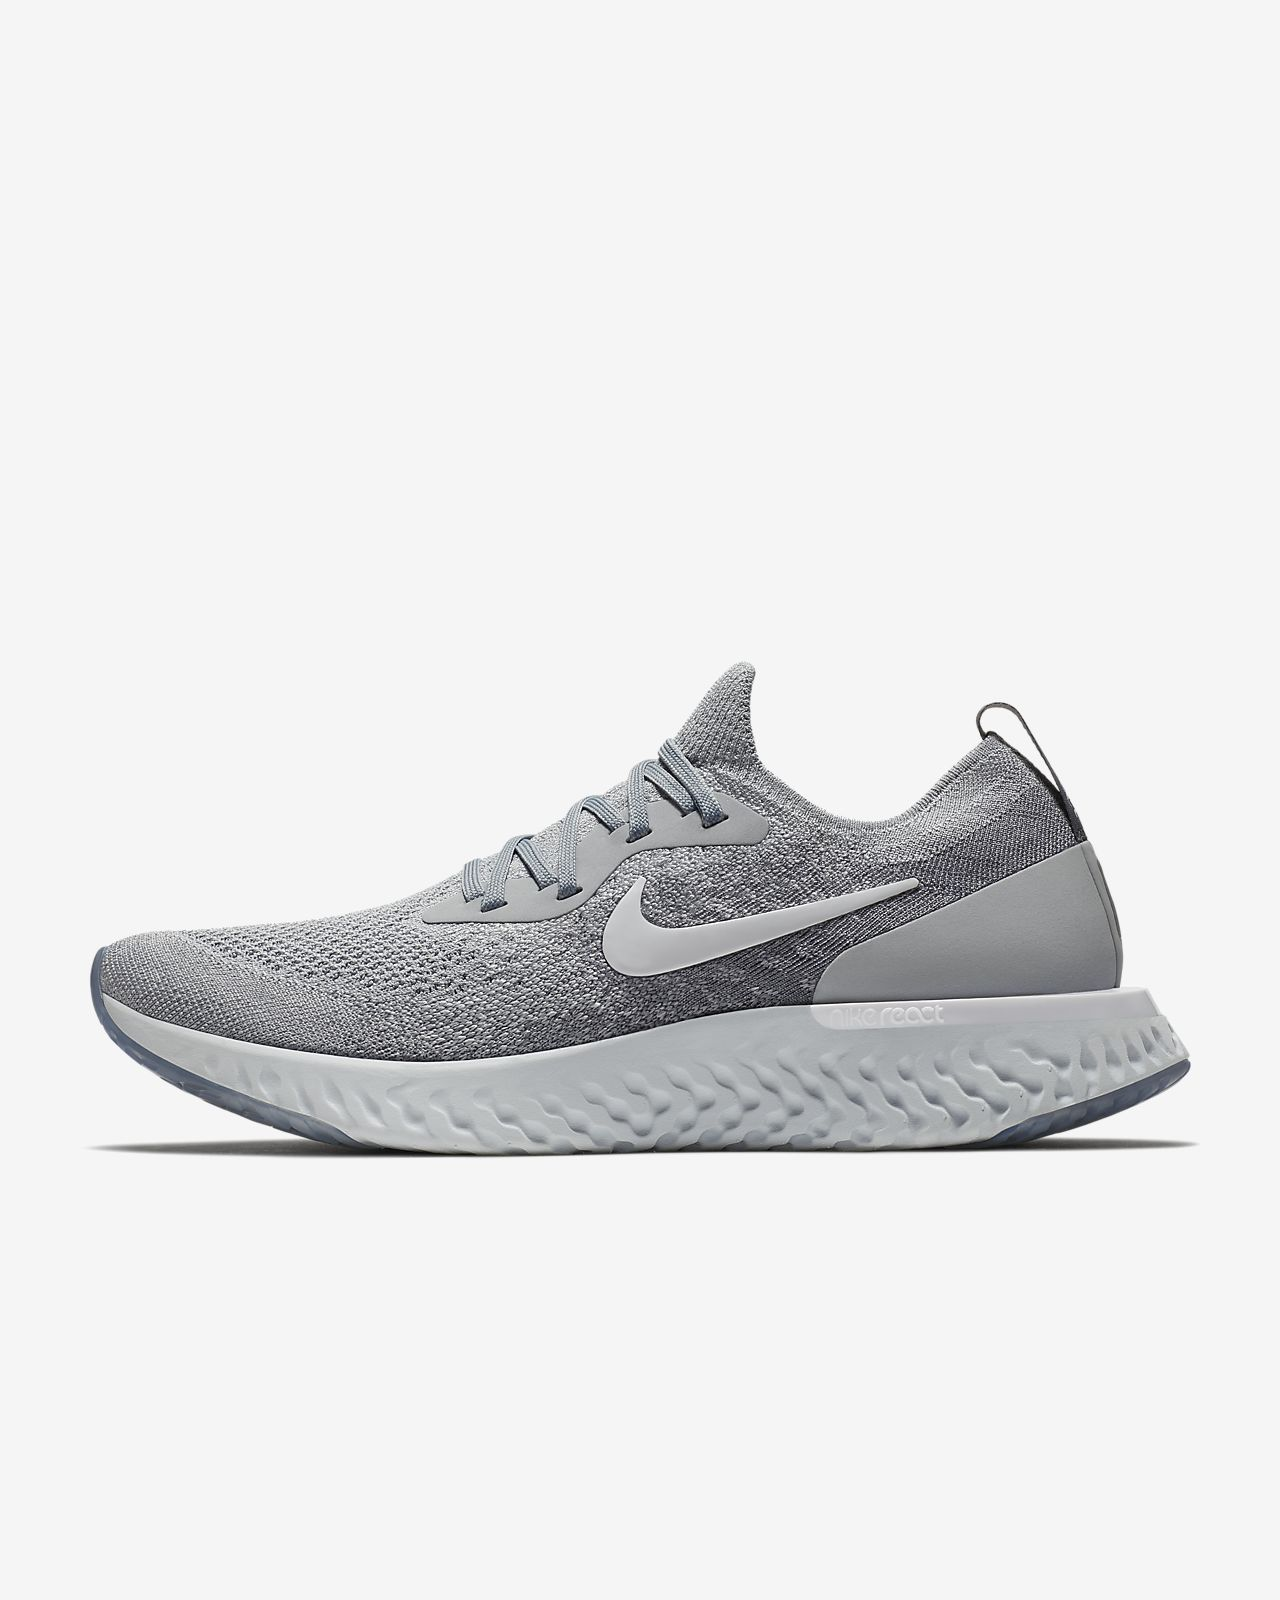 Nike Epic React Flyknit Mens Running Shoe